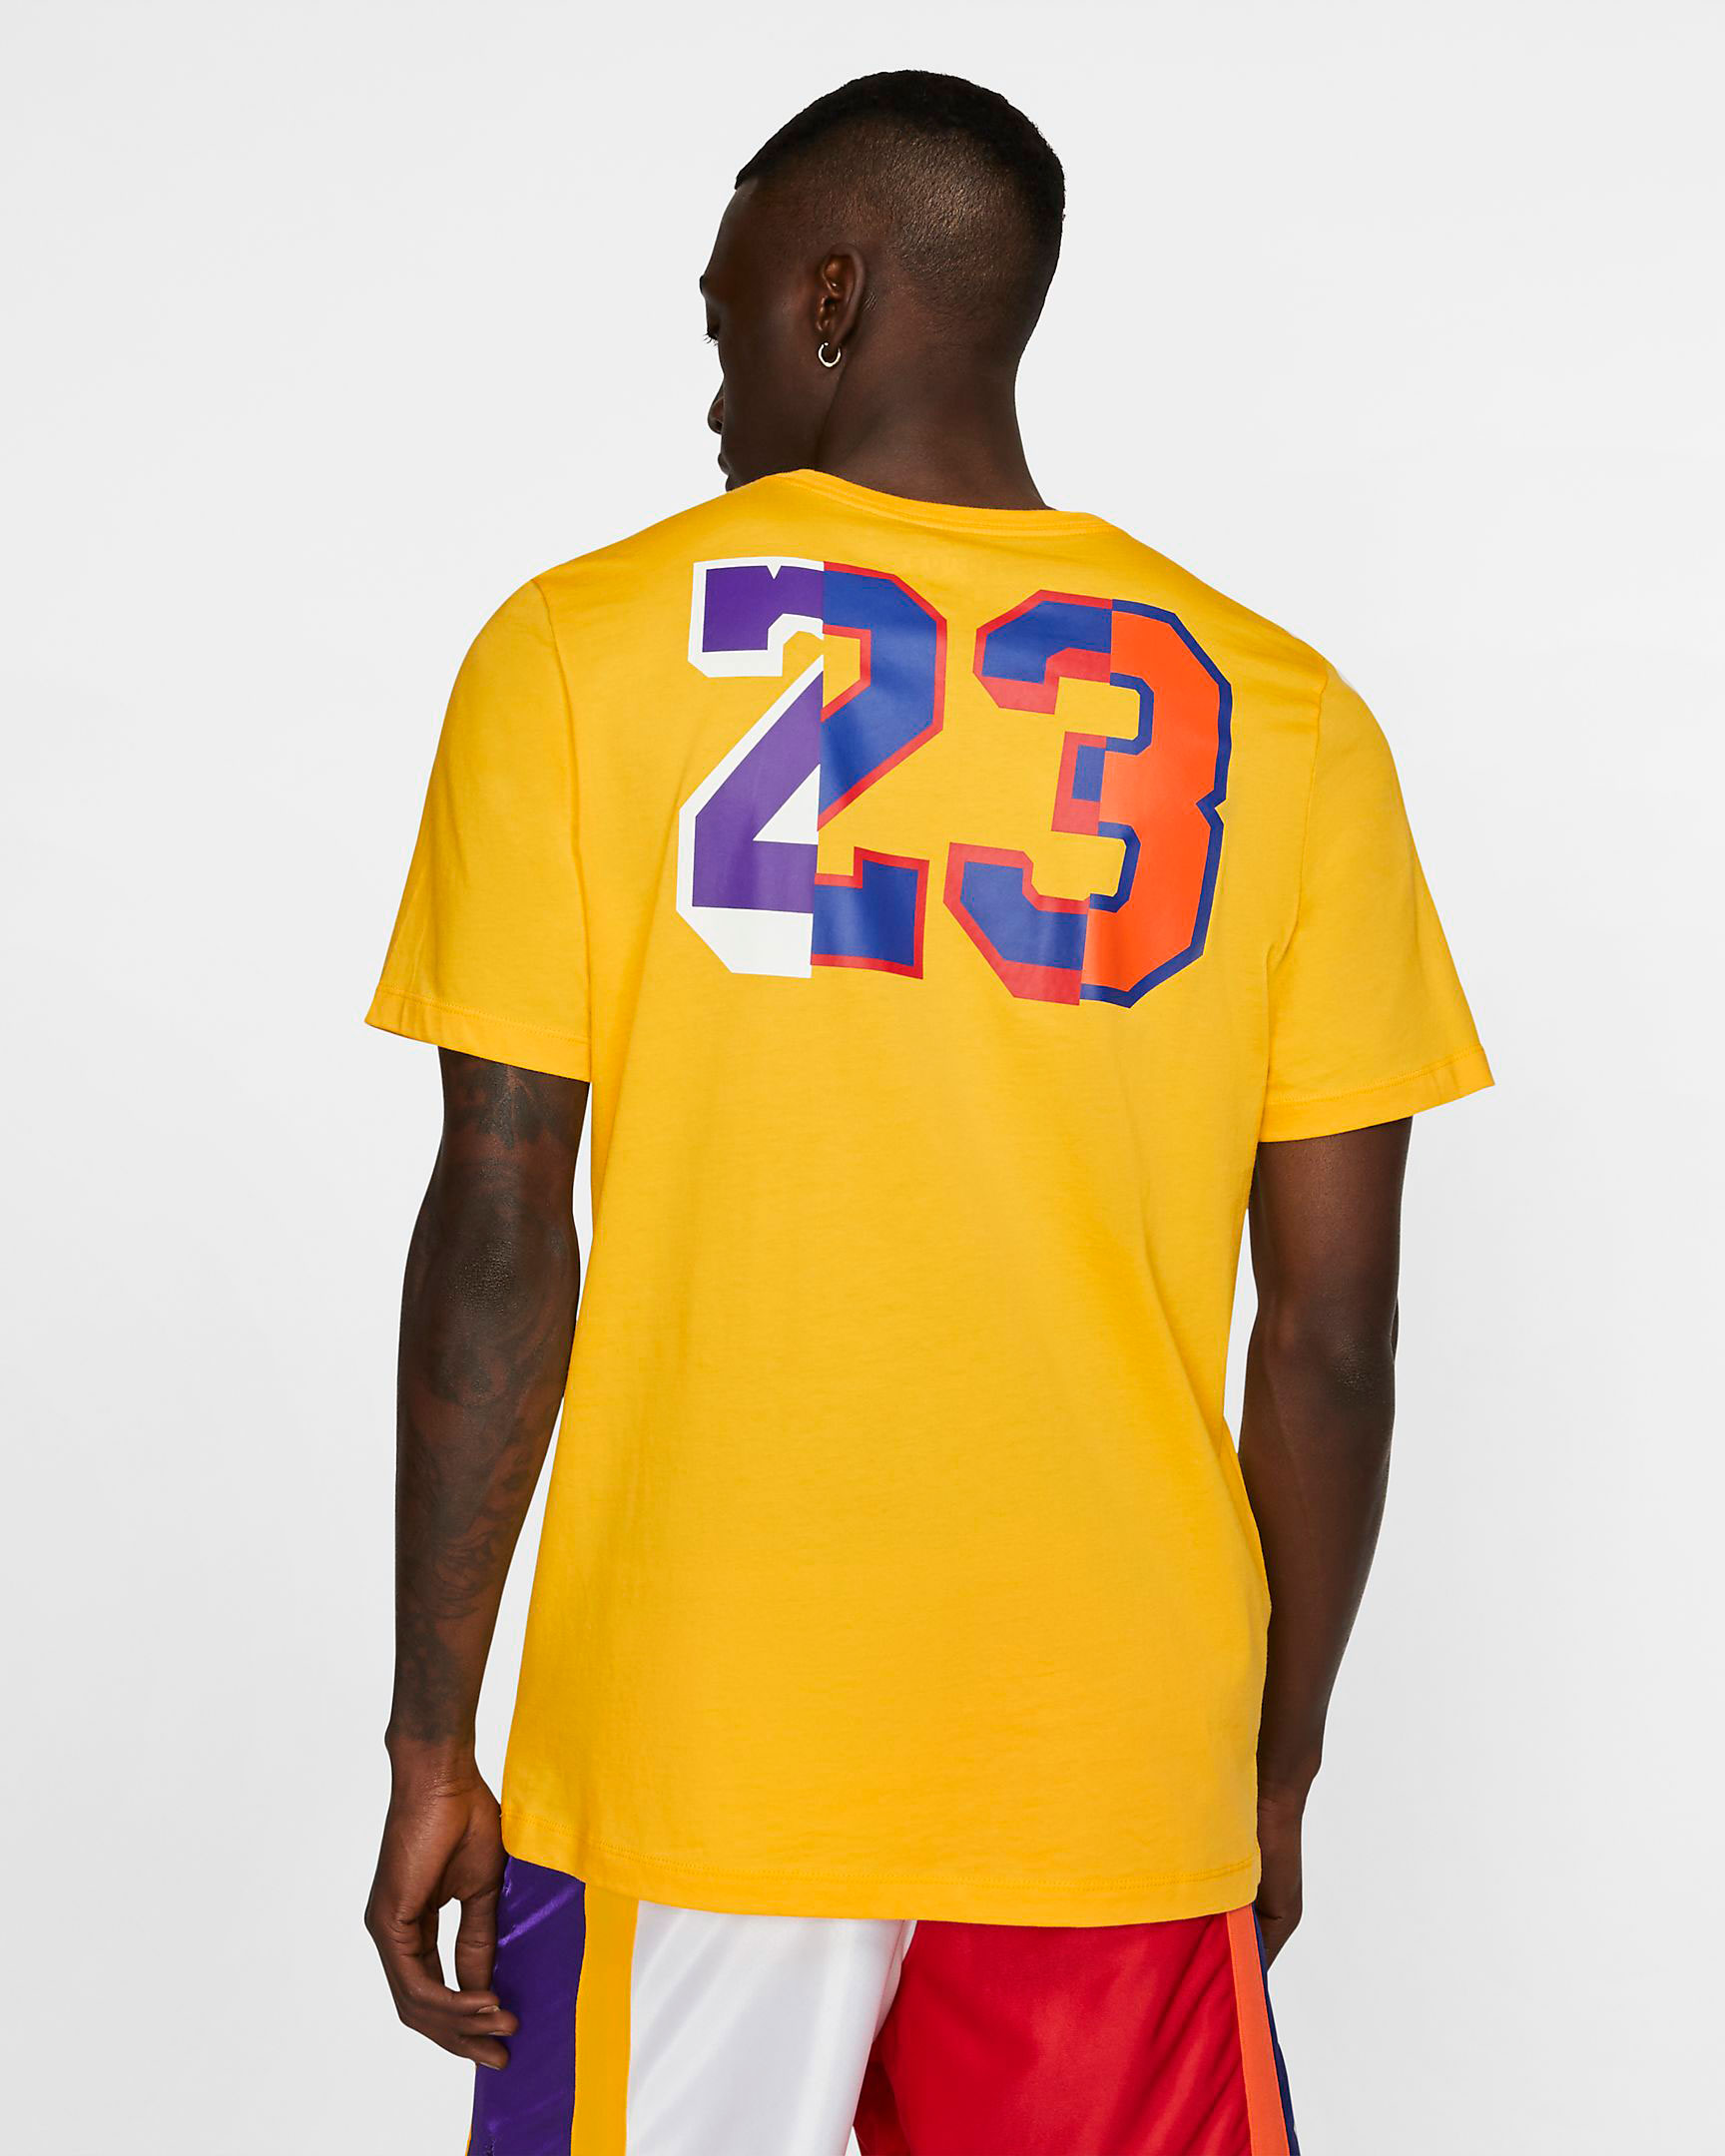 air-jordan-14-yellow-ferrari-shirt-match-2